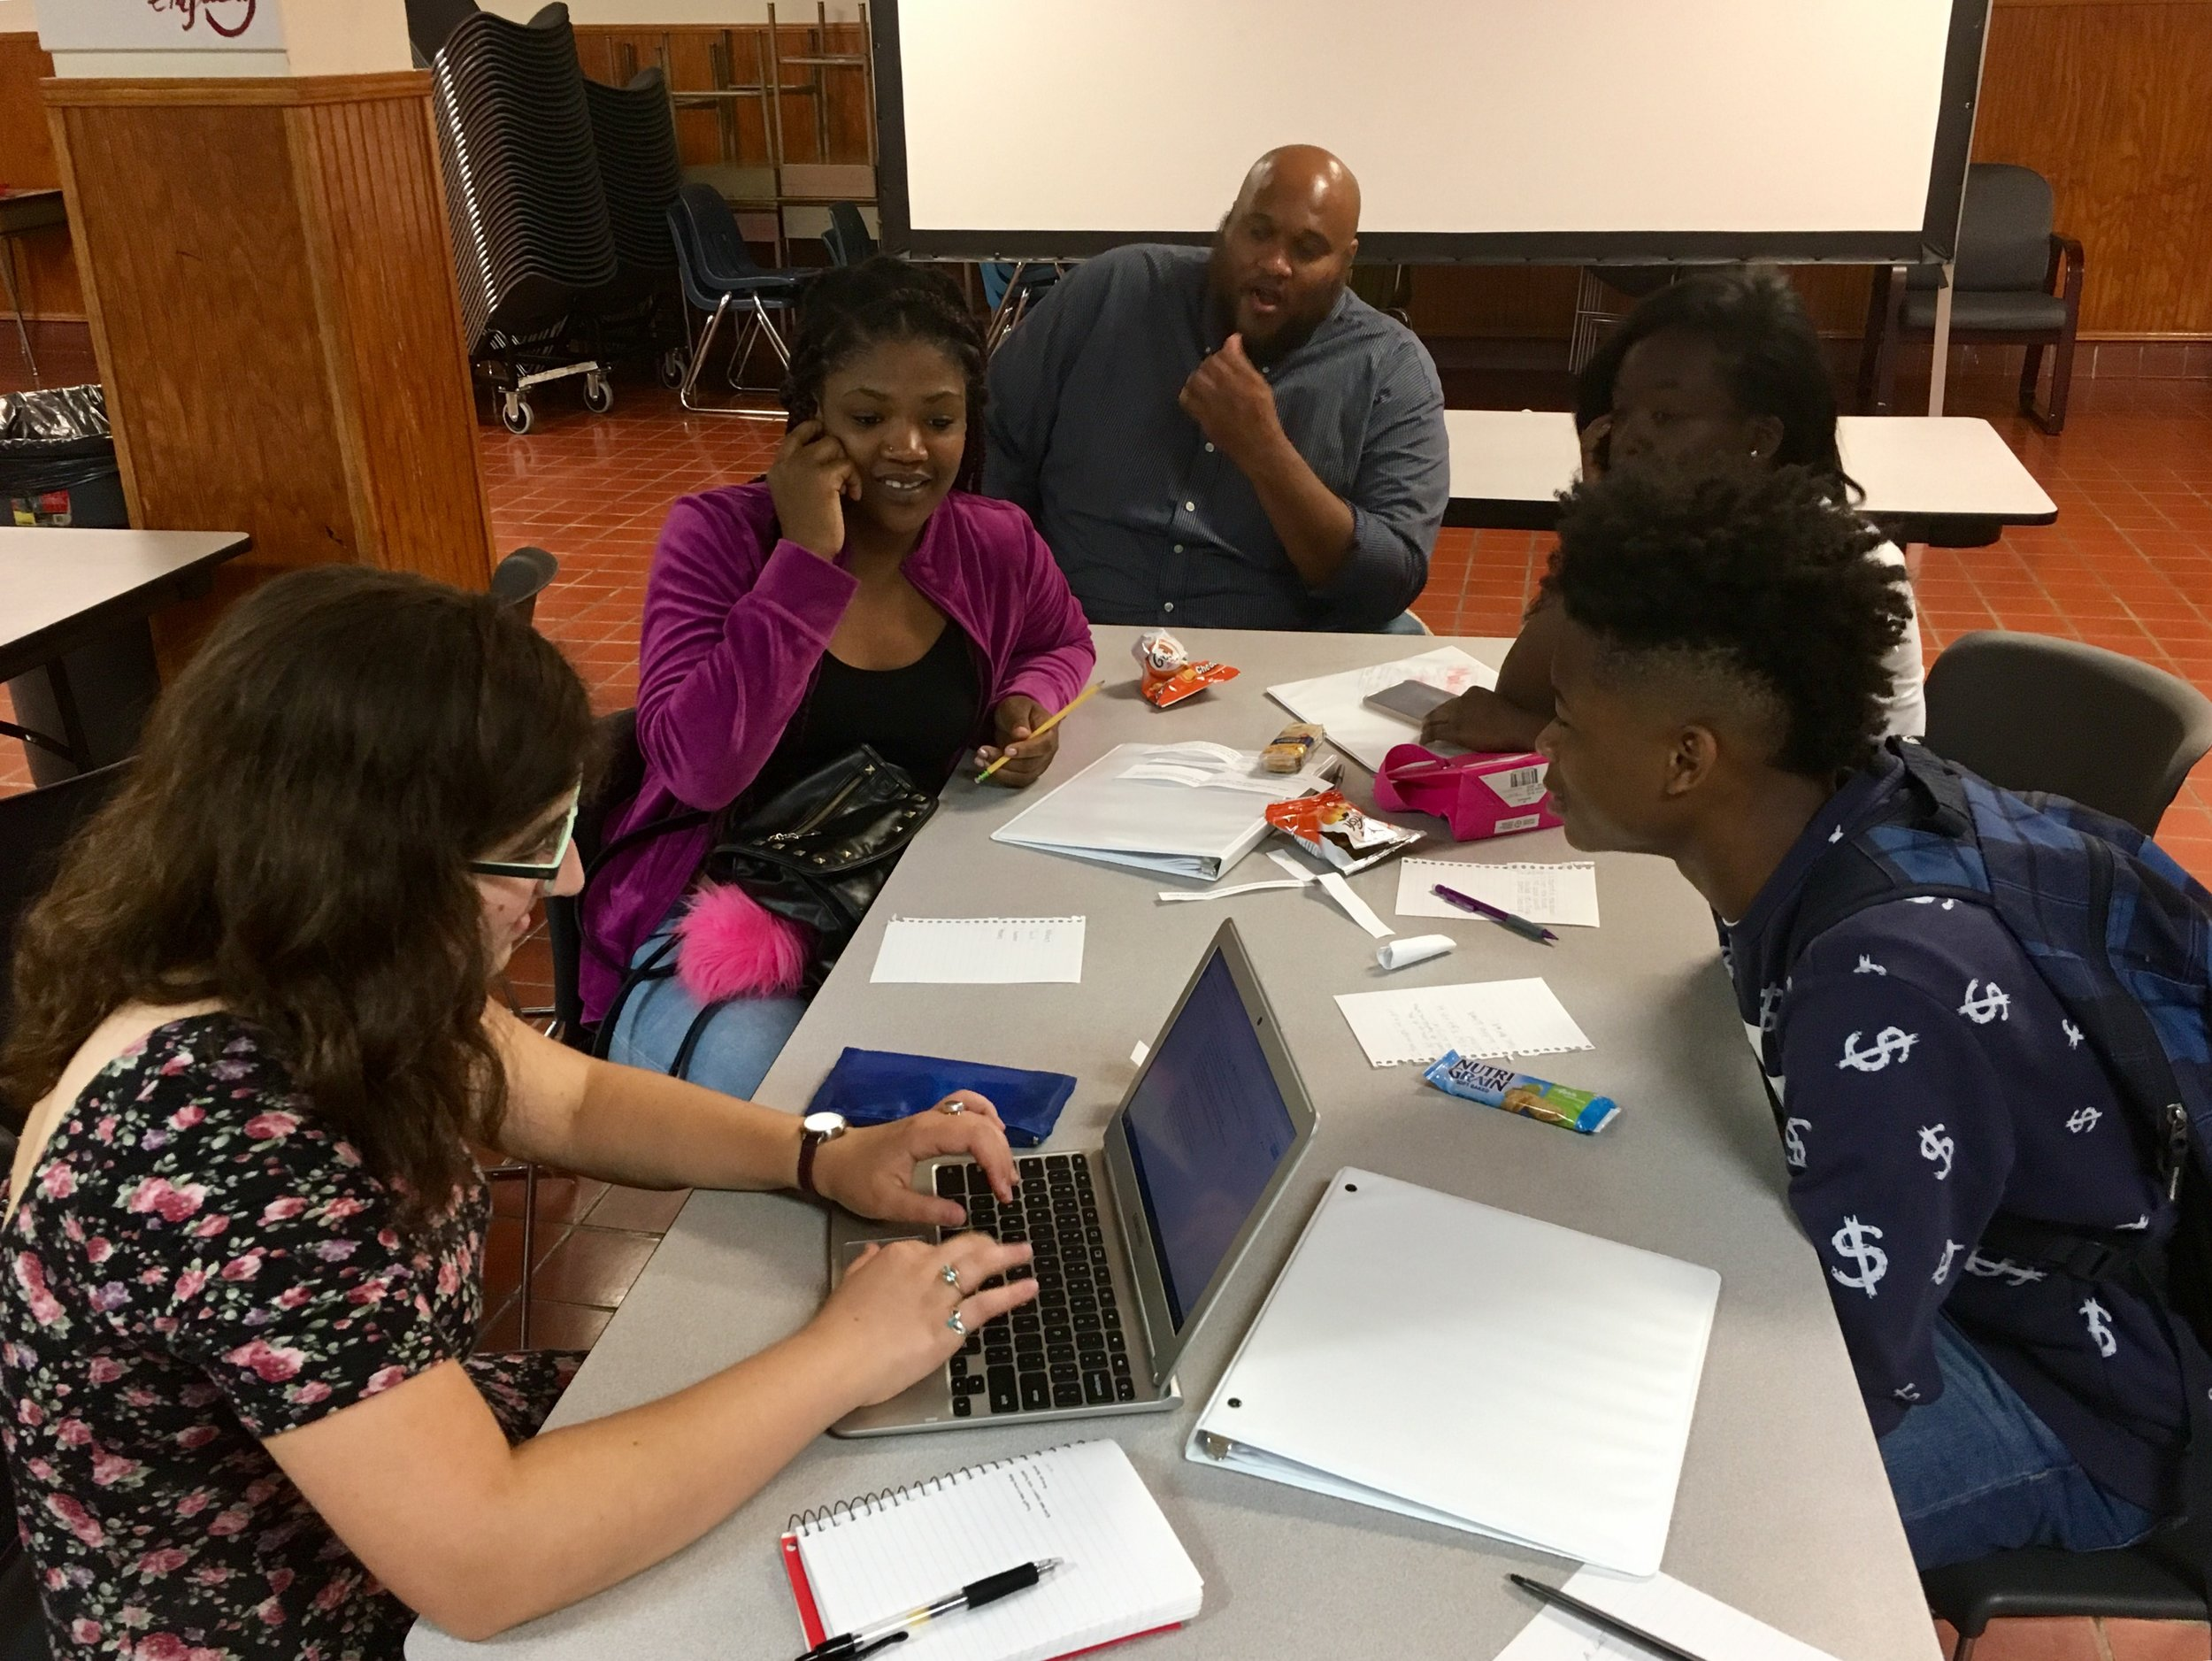 Eva (far left) writes with her group members Mikala, Makiya, and Dartavius. Reach Incorporated employee Vincent also listens in.